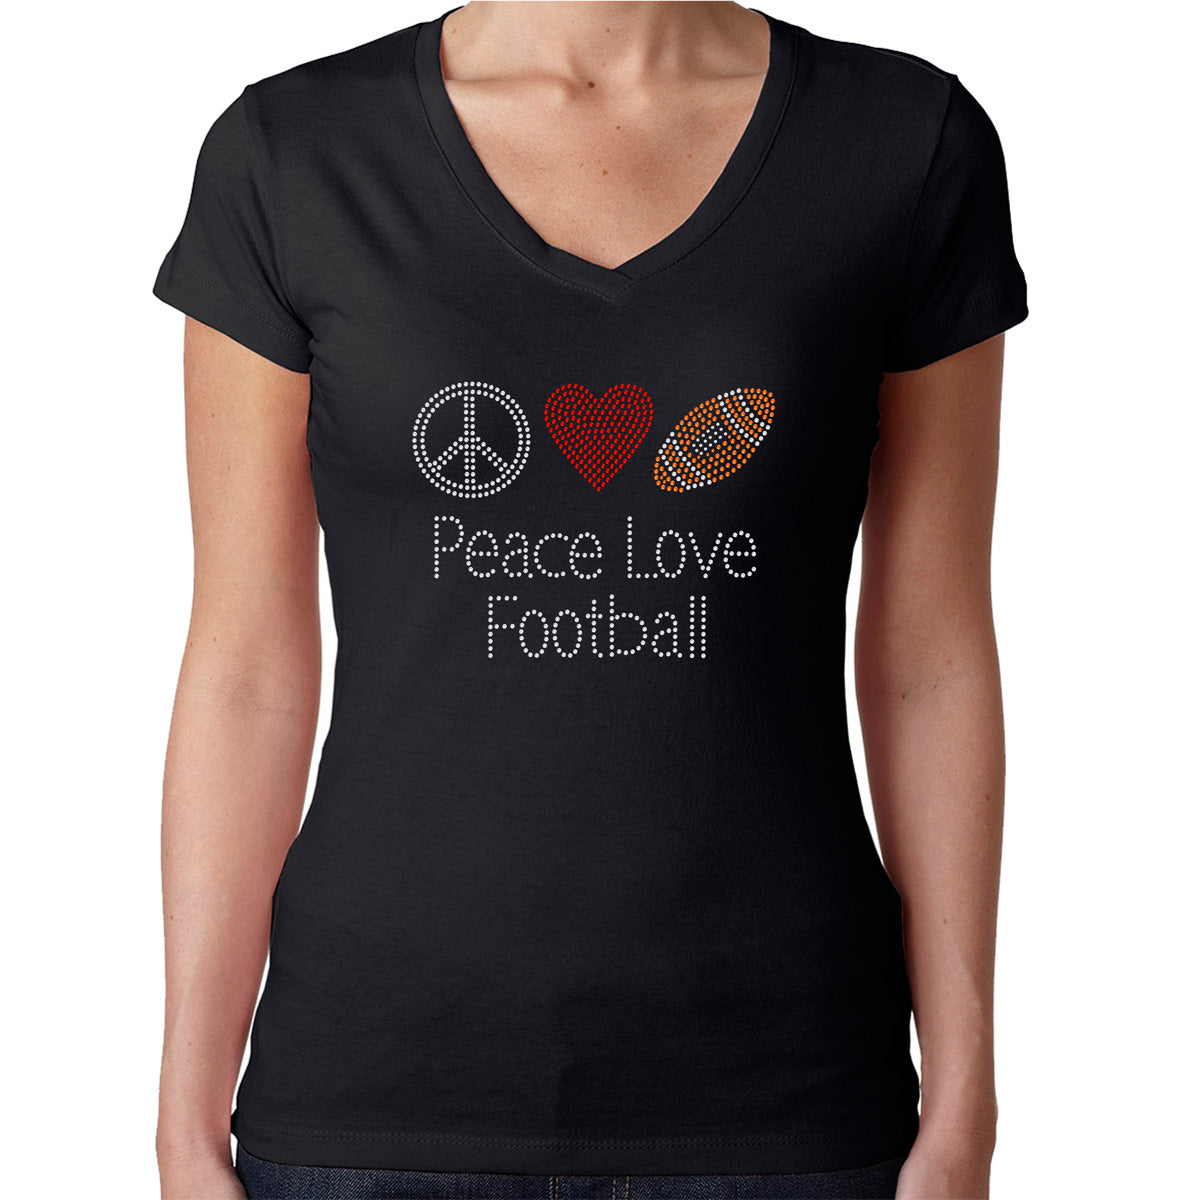 Womens T-Shirt Rhinestone Bling Black Fitted Tee Peace Love Heart Football